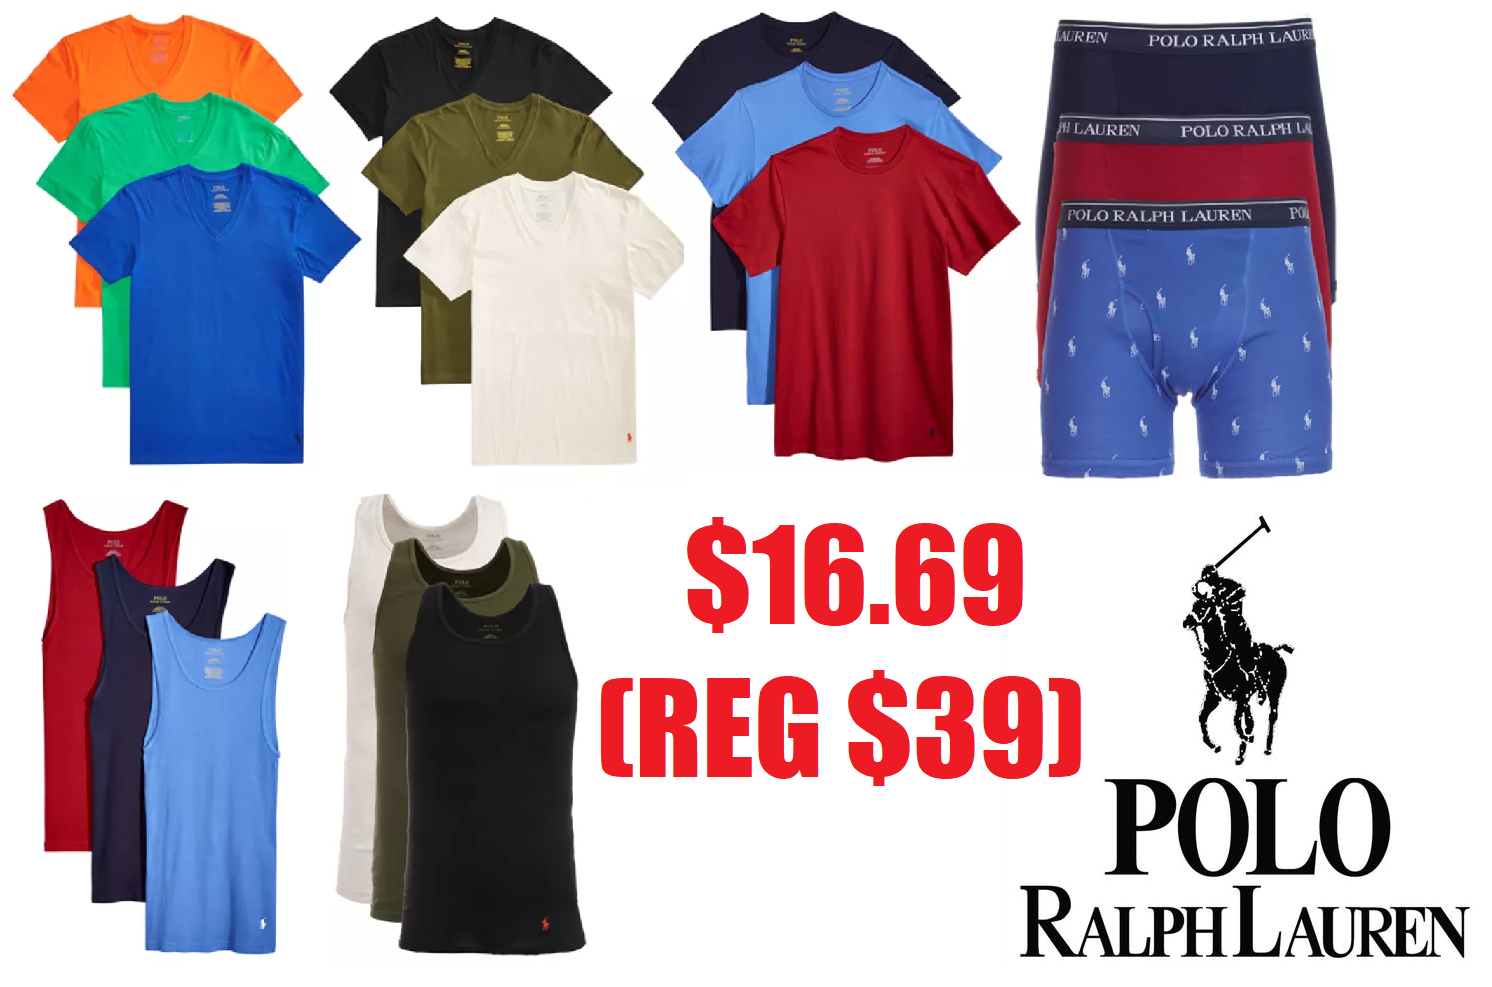 5e264a568 3 Pack Polo Ralph Lauren Men's Boxers, Classic Crew Neck T-Shirts, Tank  Tops or V-Neck T-Shirts $16.69 (Reg $39.50) + Free Pickup at Macy's